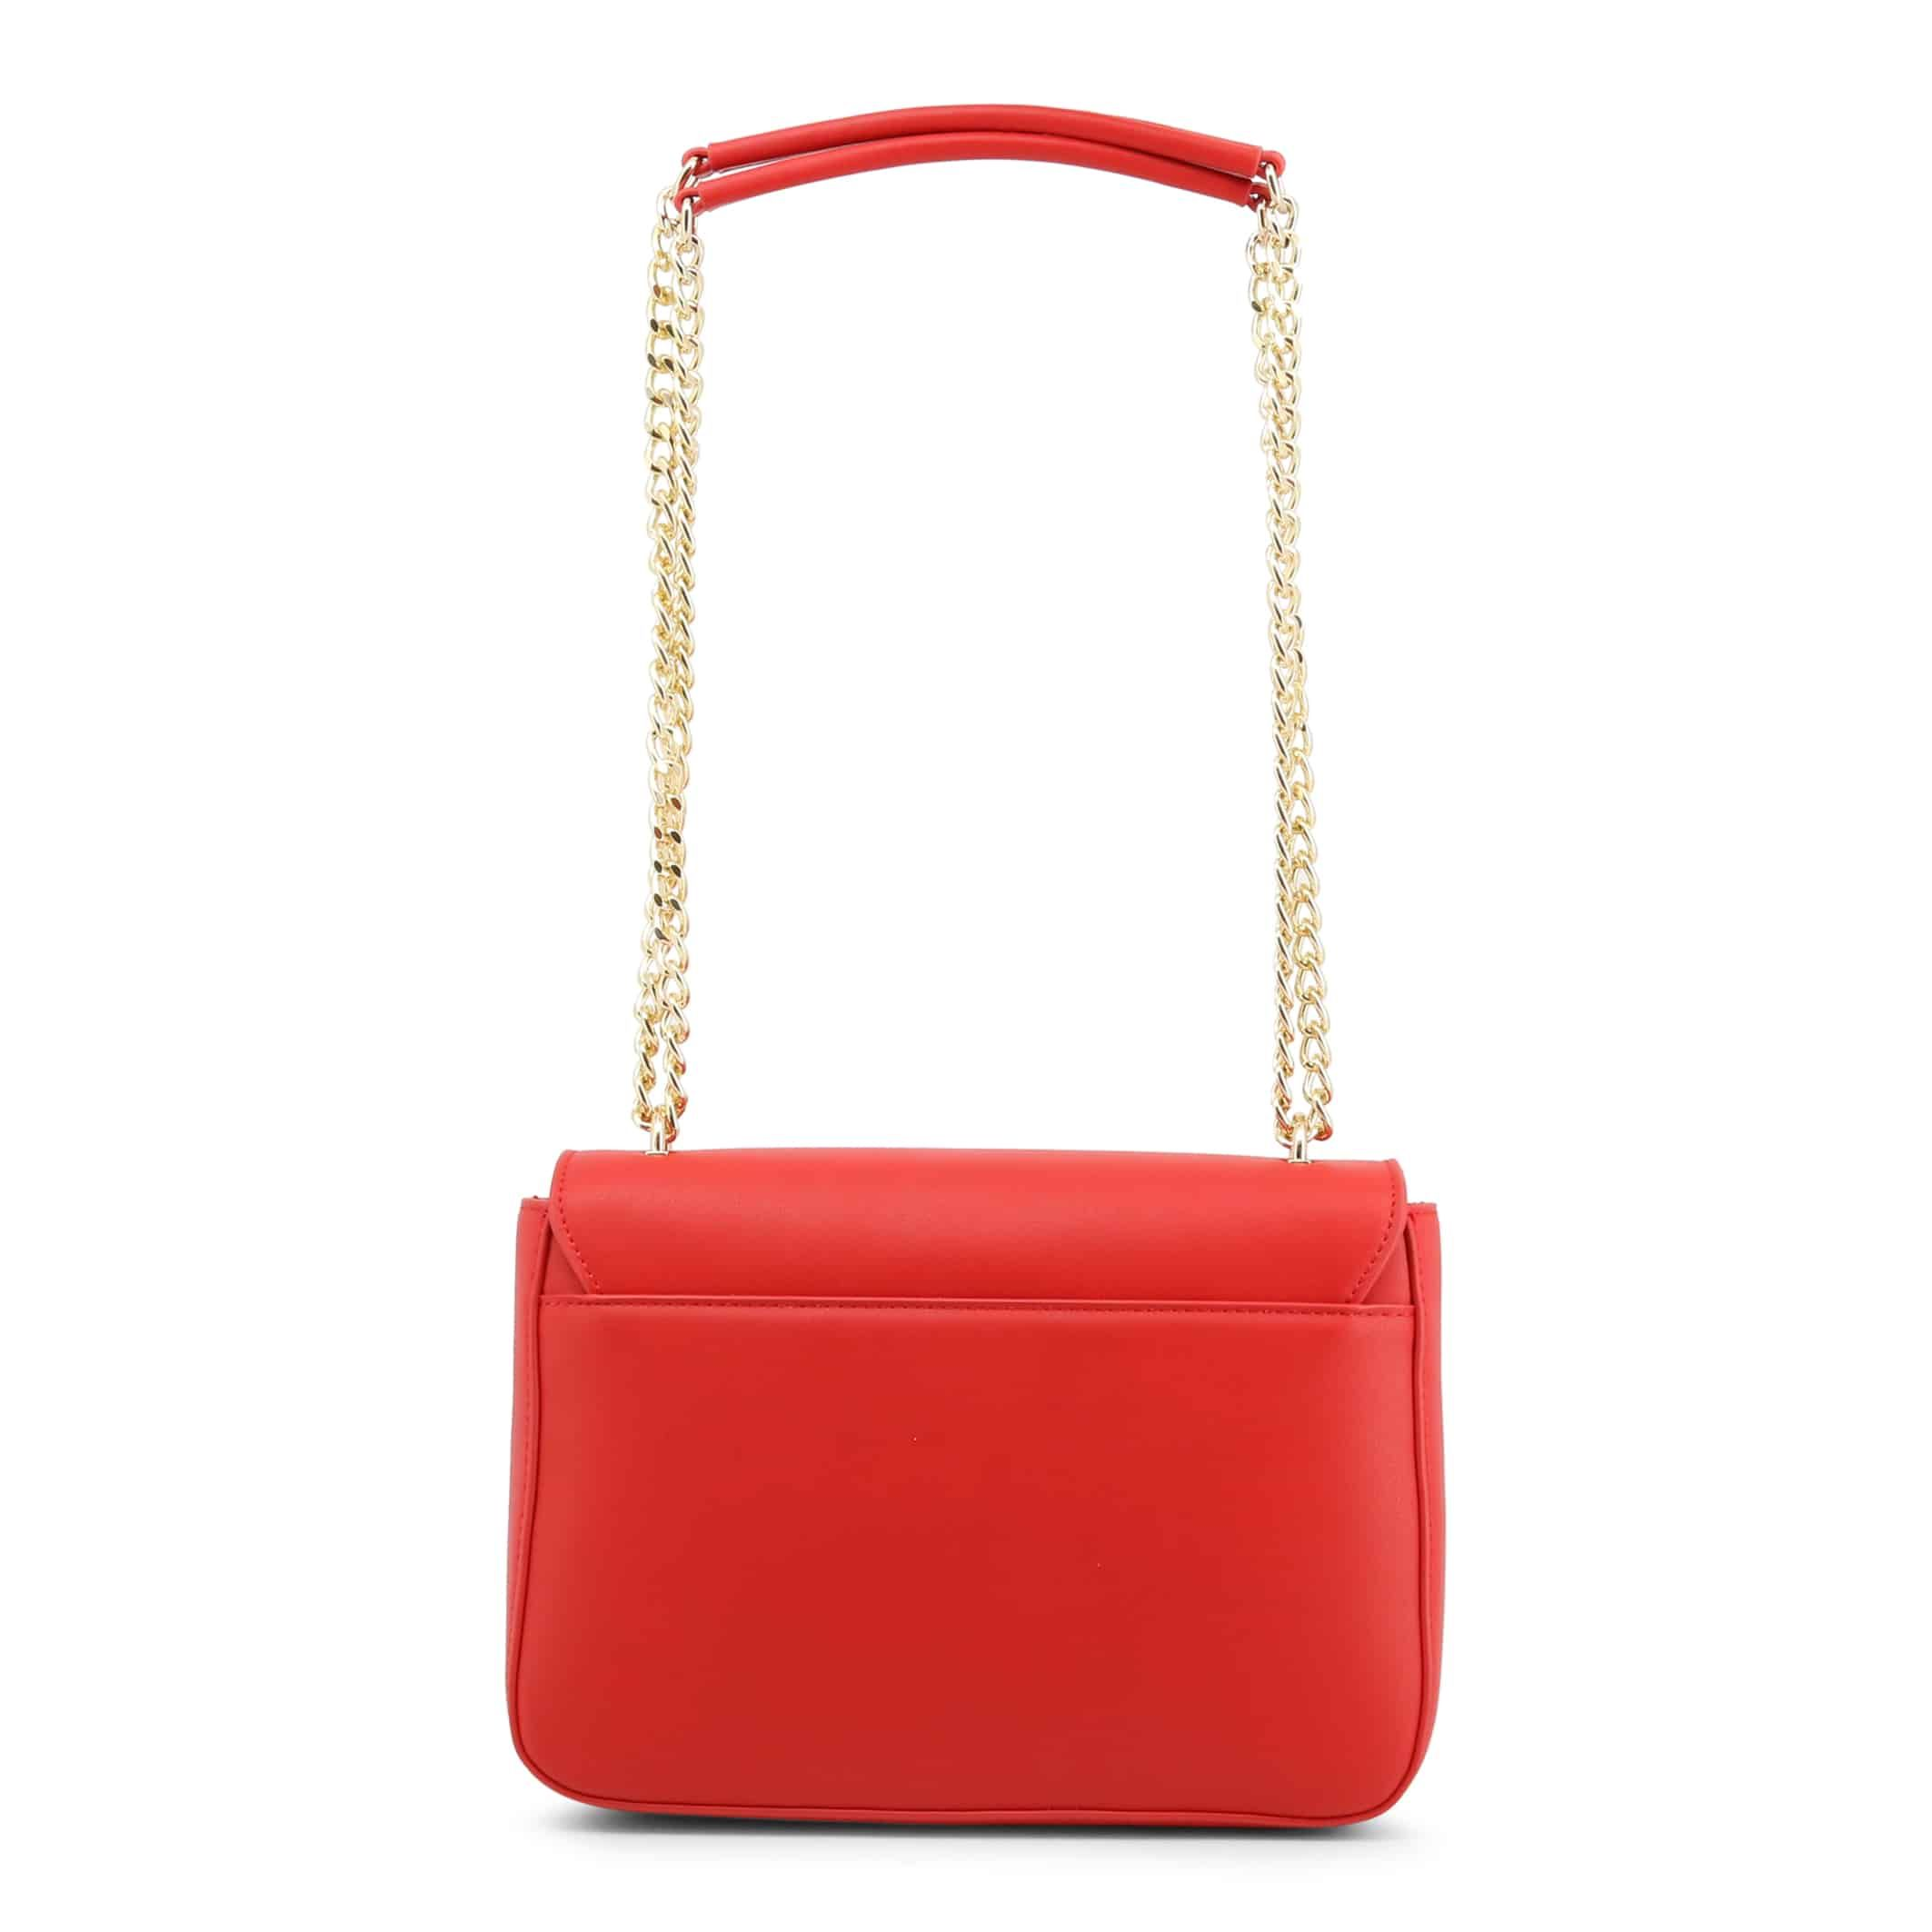 31Bd0070 0720 11Eb Aefc Ef5B88Bcd865 Love Moschino - Jc4035Pp1Ble - Red